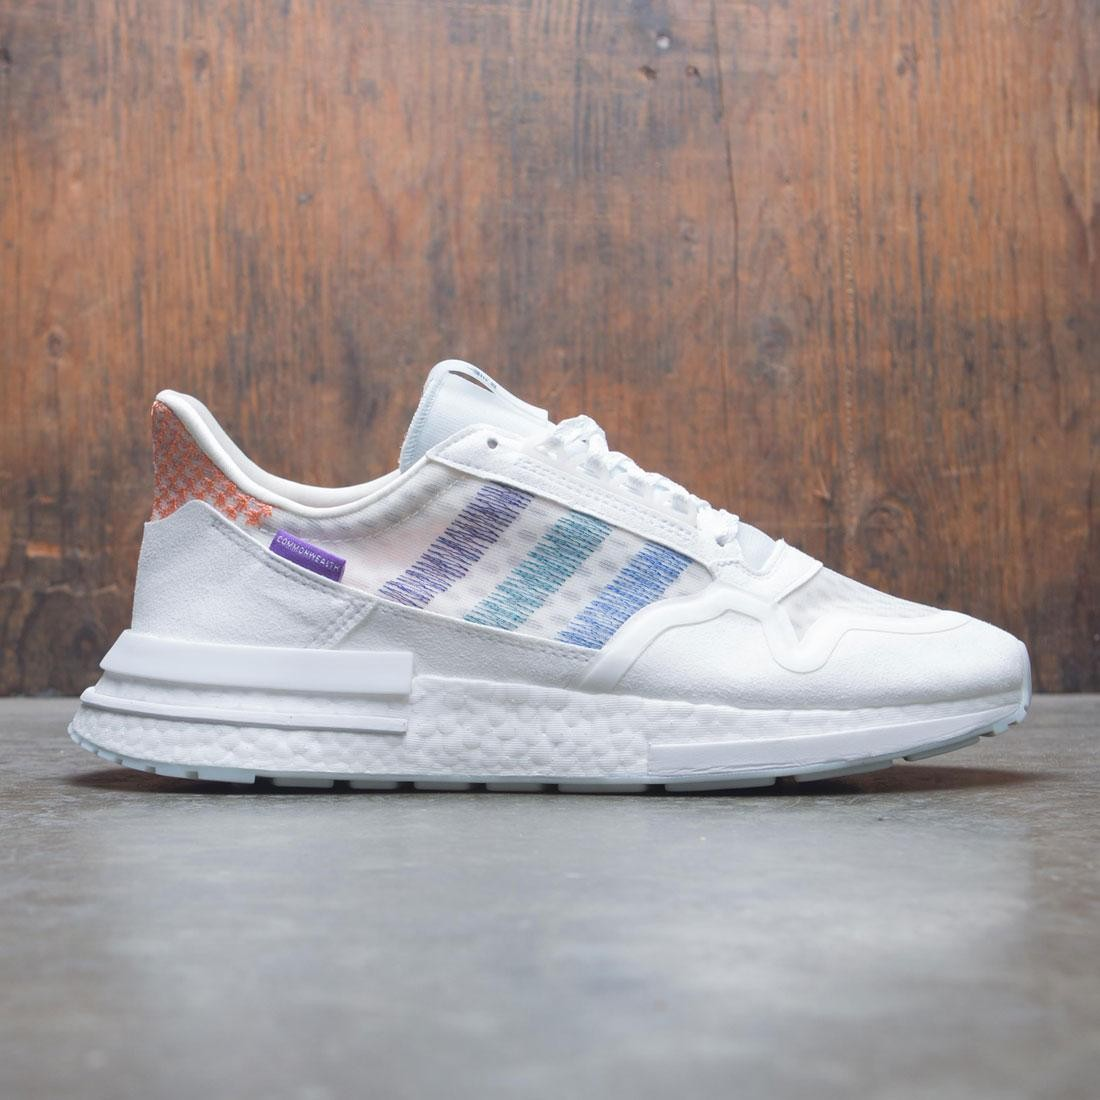 ceedeadf9 Adidas Consortium x Commonwealth Men ZX 500 RM white orchid tint